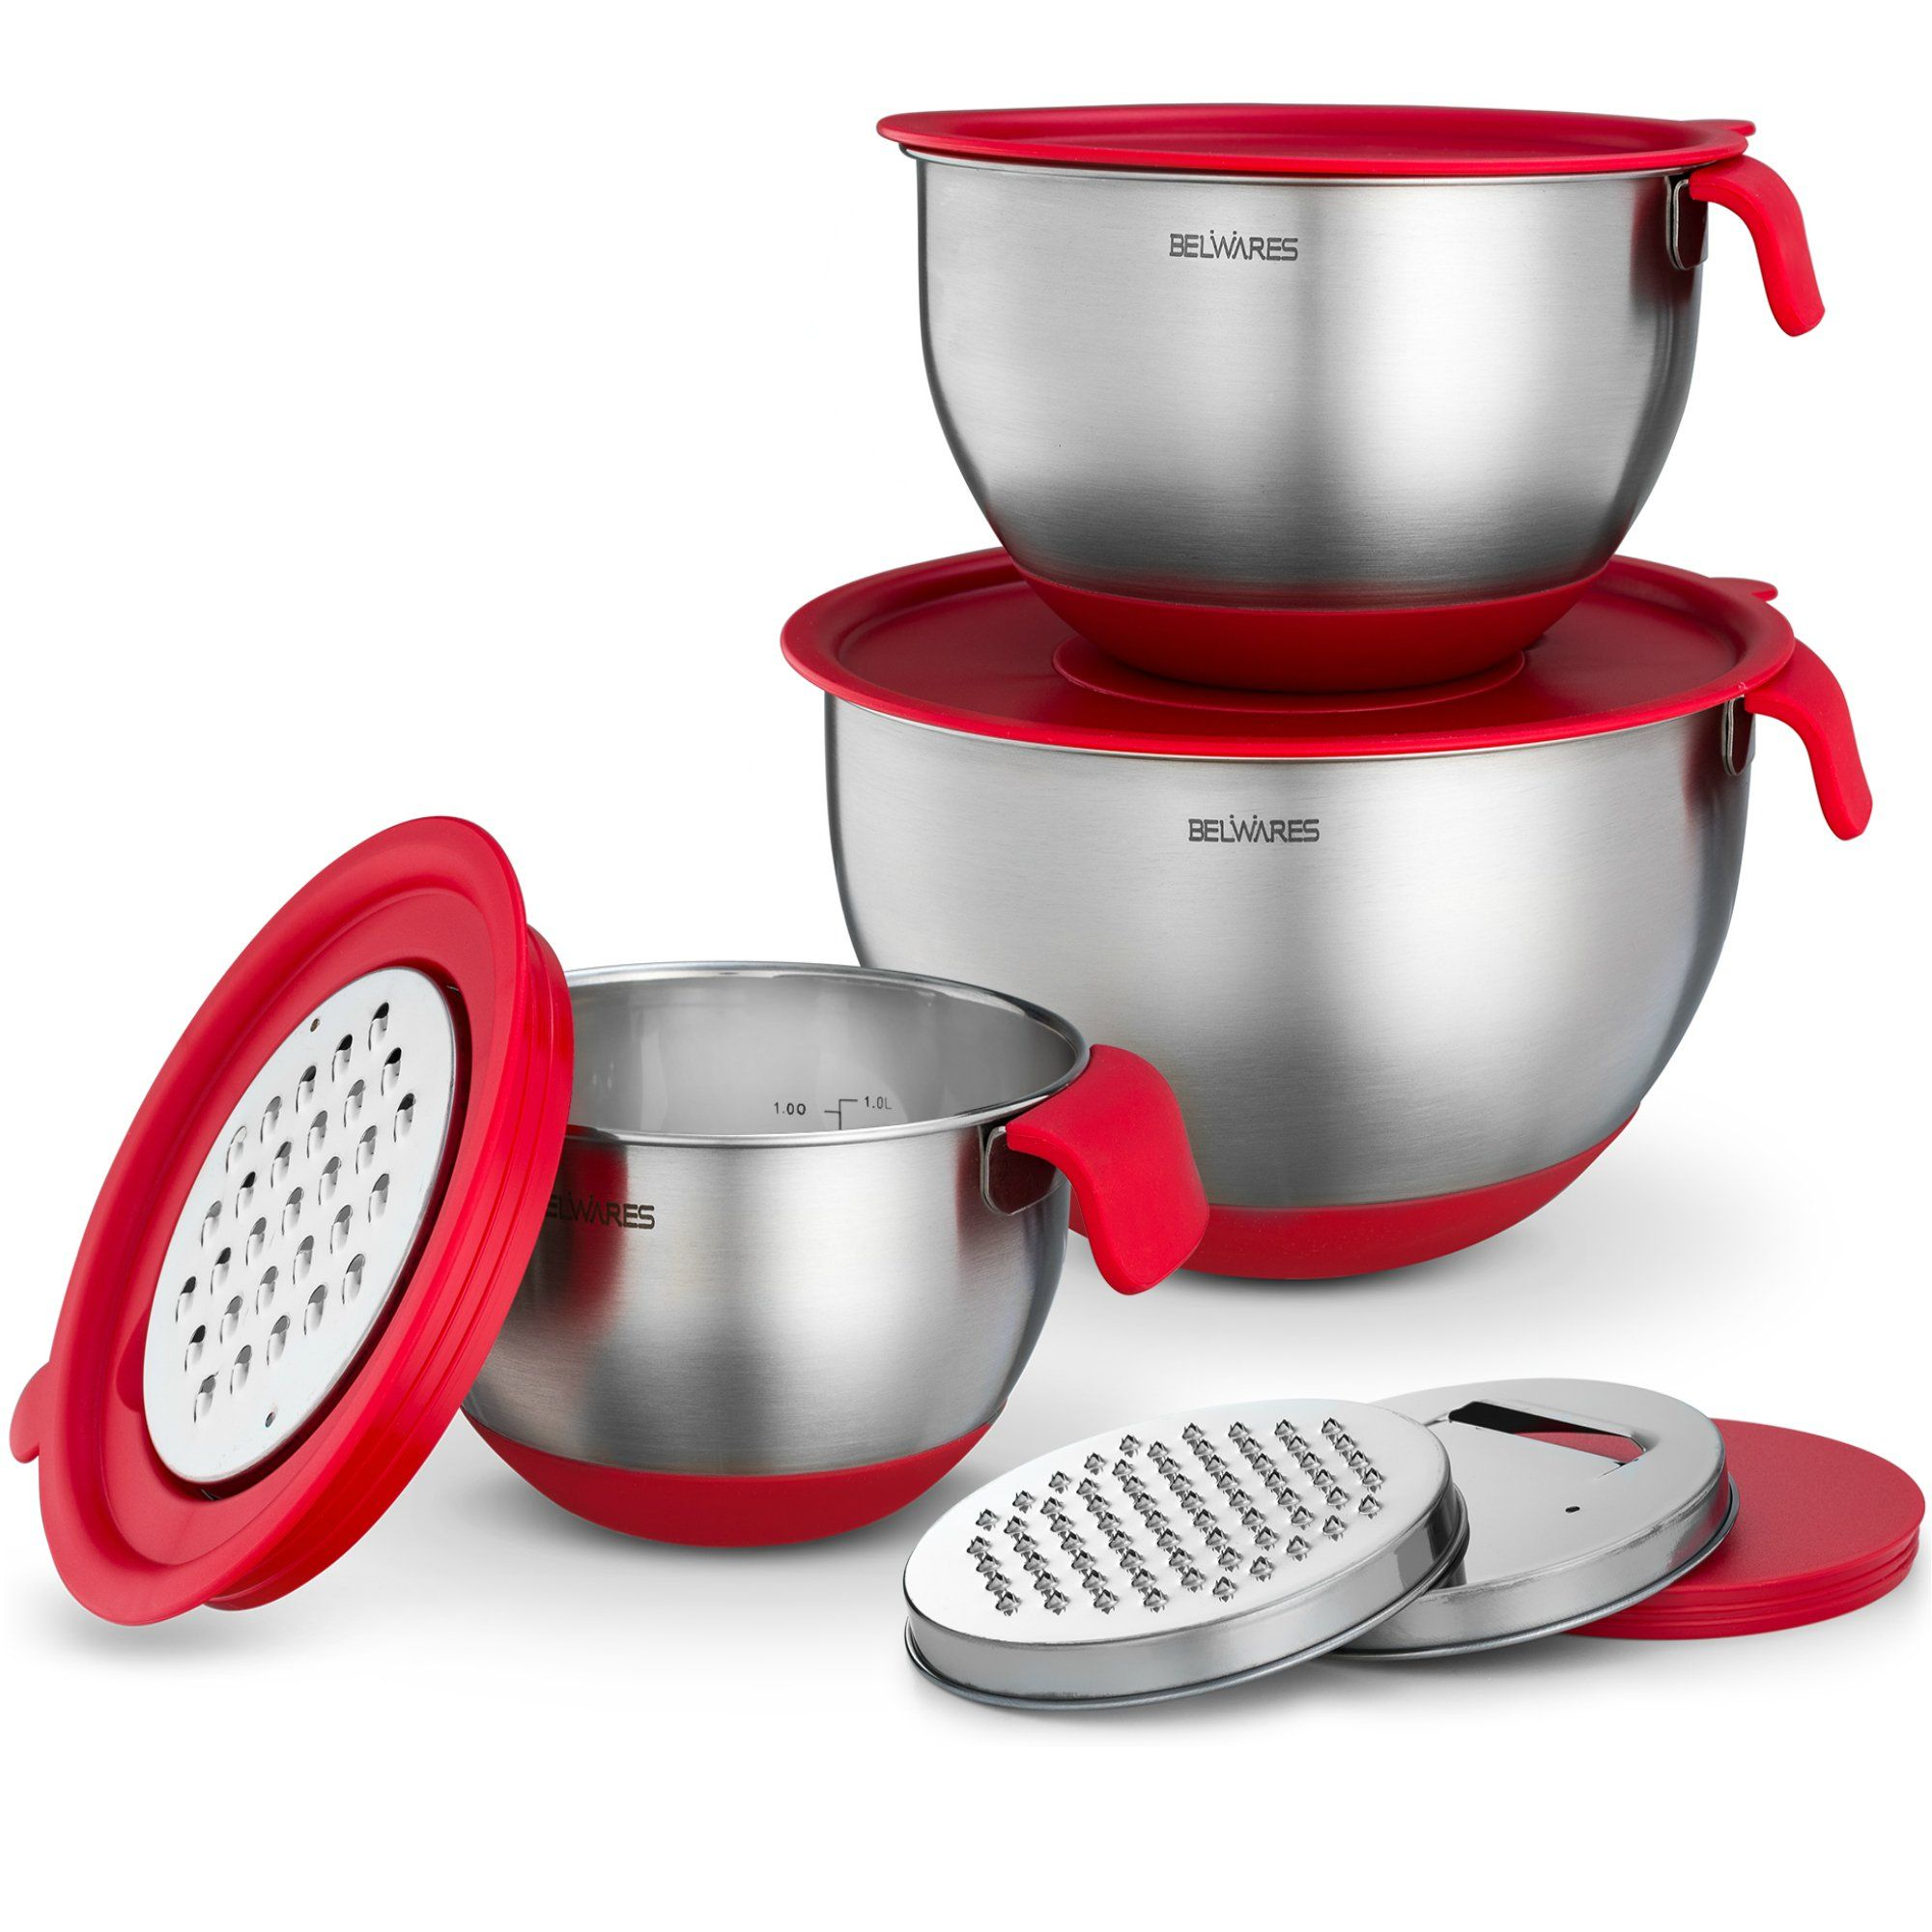 Best Stainless Steel Mixing Bowls Set of 3 with Grater Attachments ...